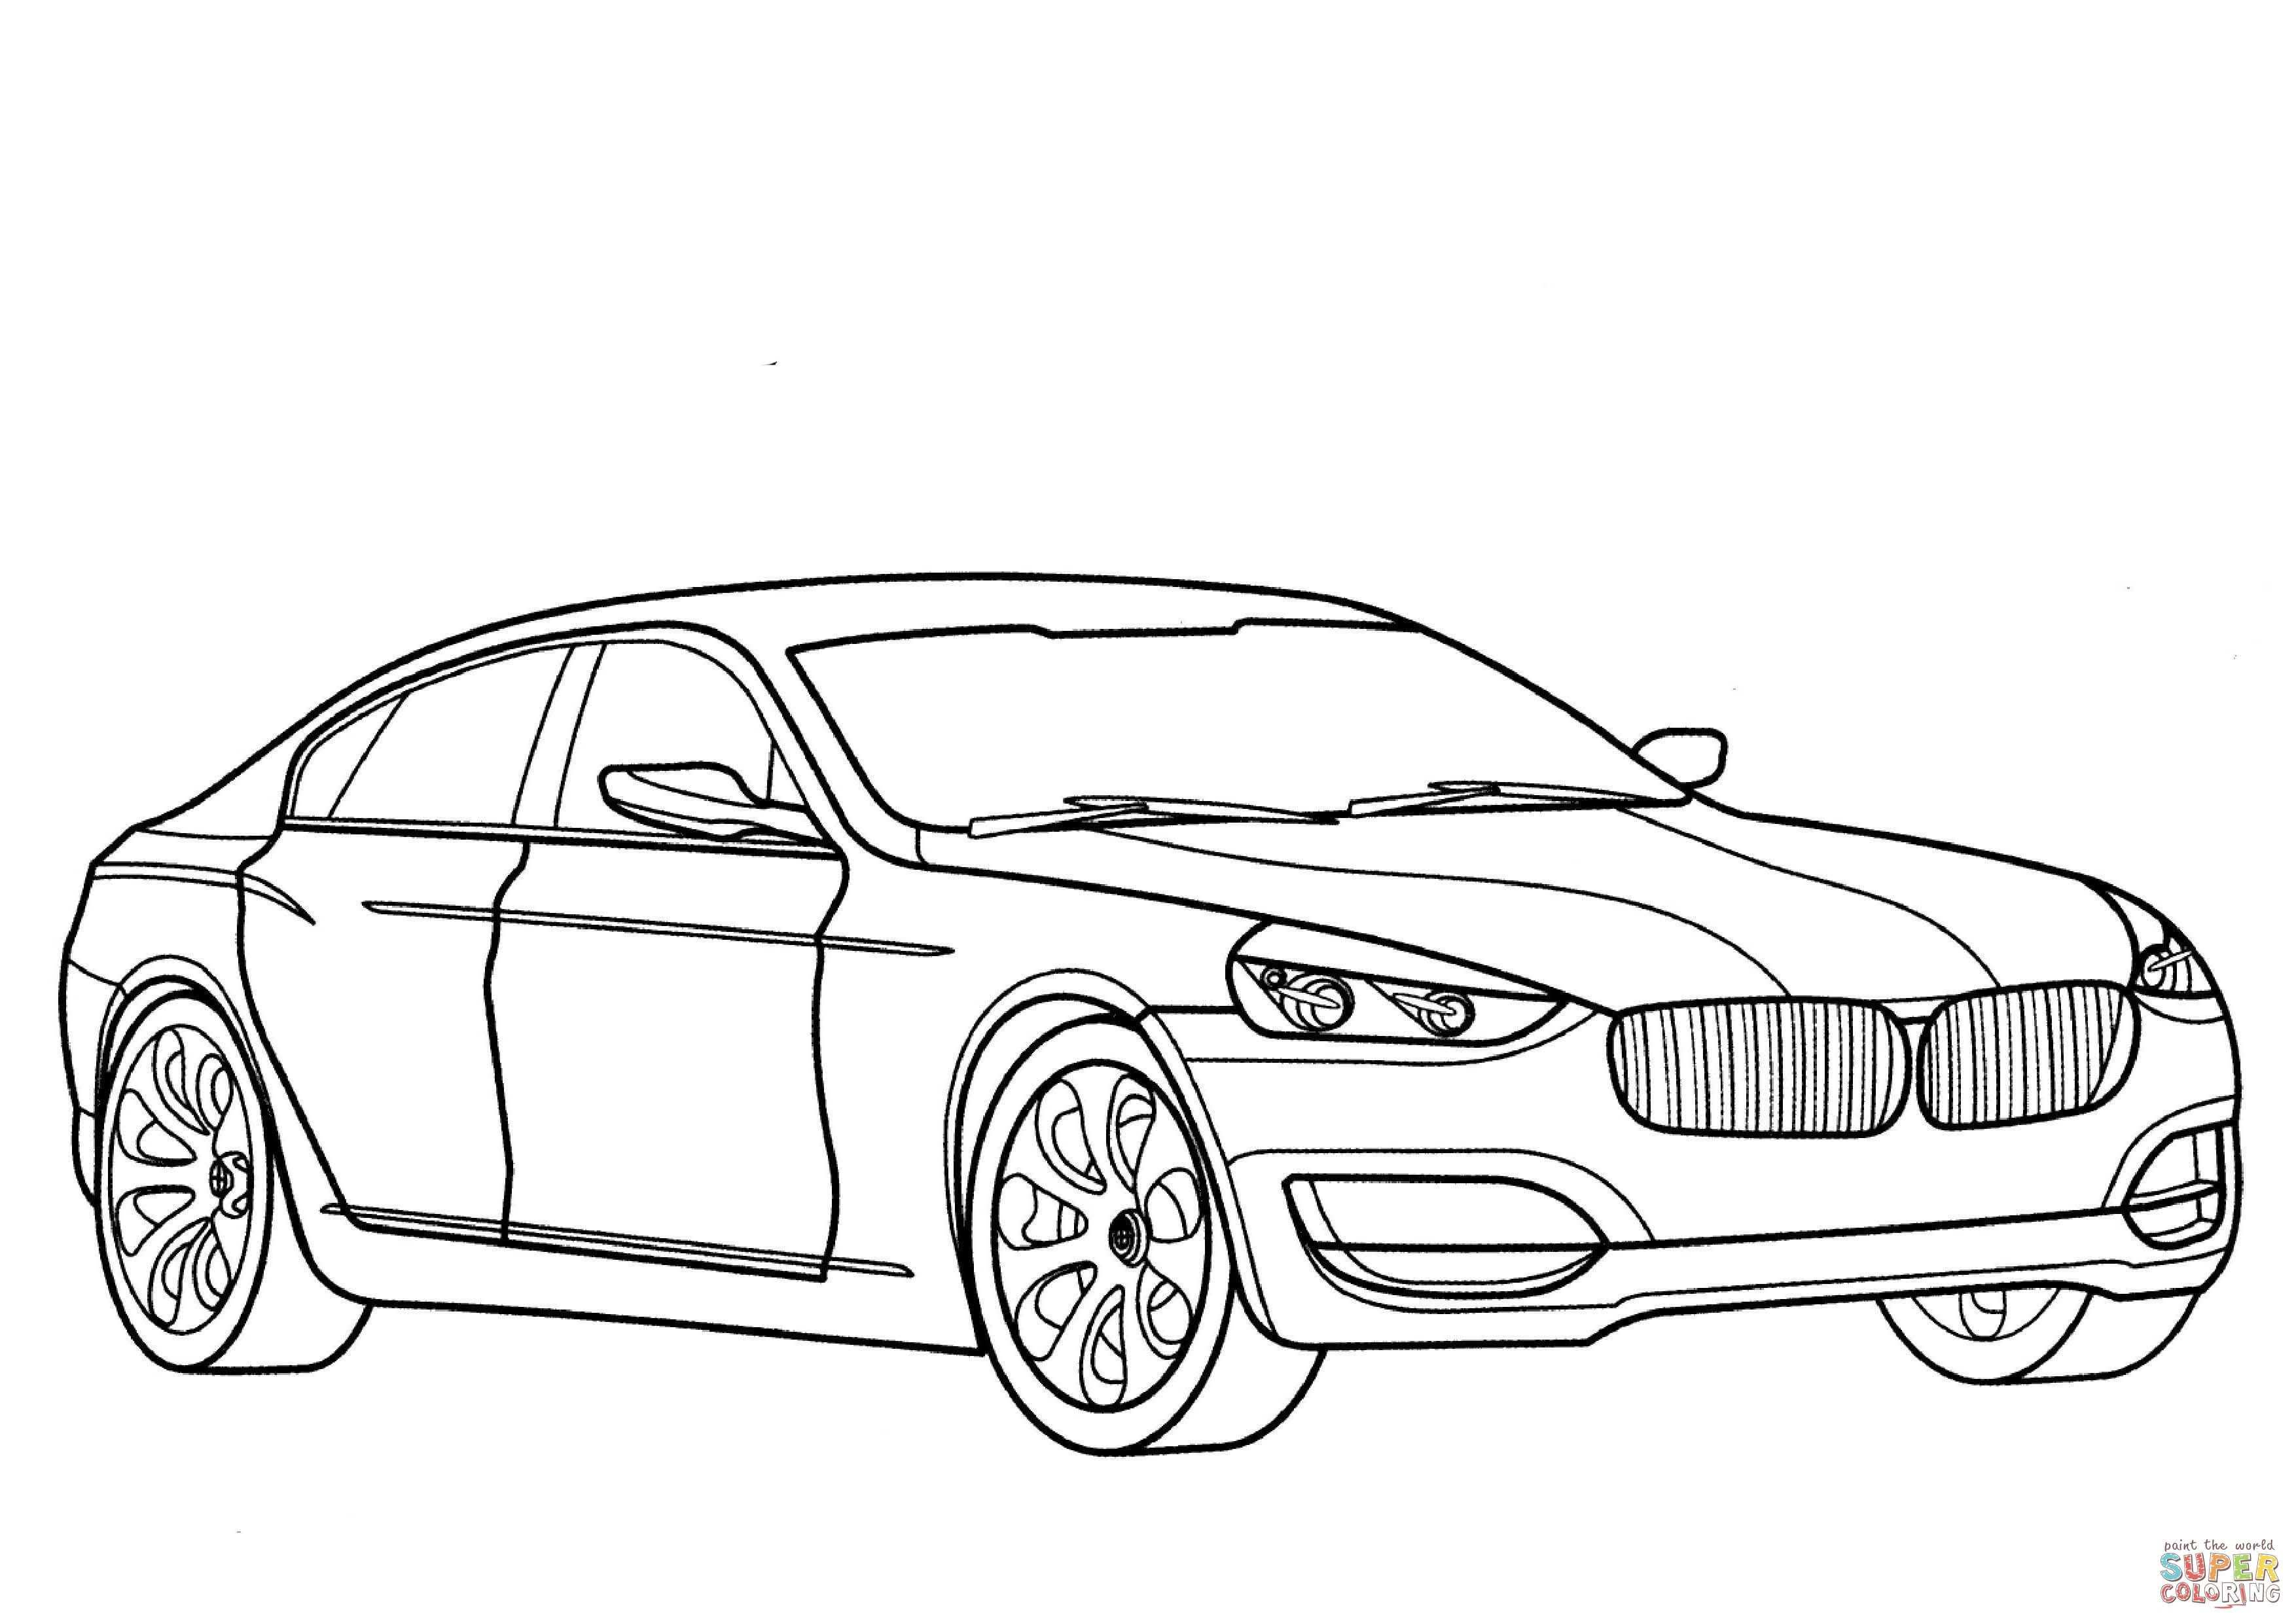 Bmw 3 Series Gt Coloring Page Free Printable Coloring Pages